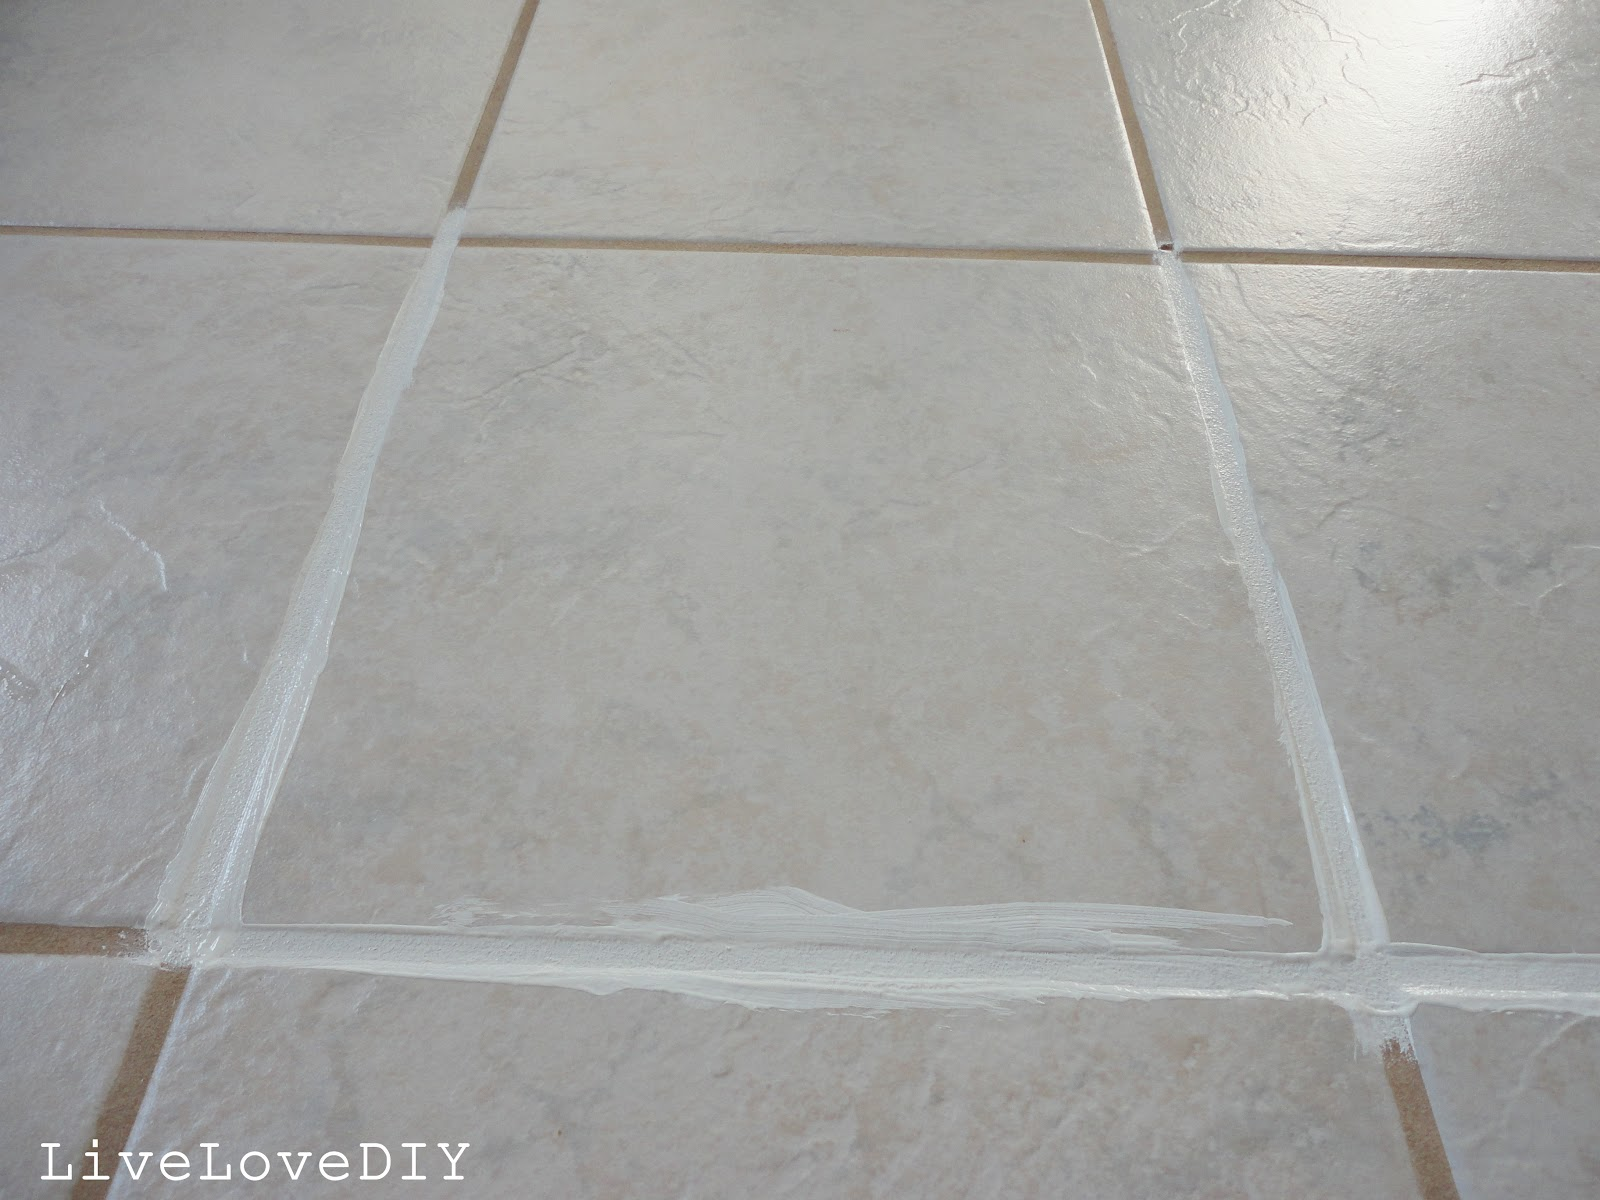 Livelovediy how to restore dirty tile grout dailygadgetfo Images